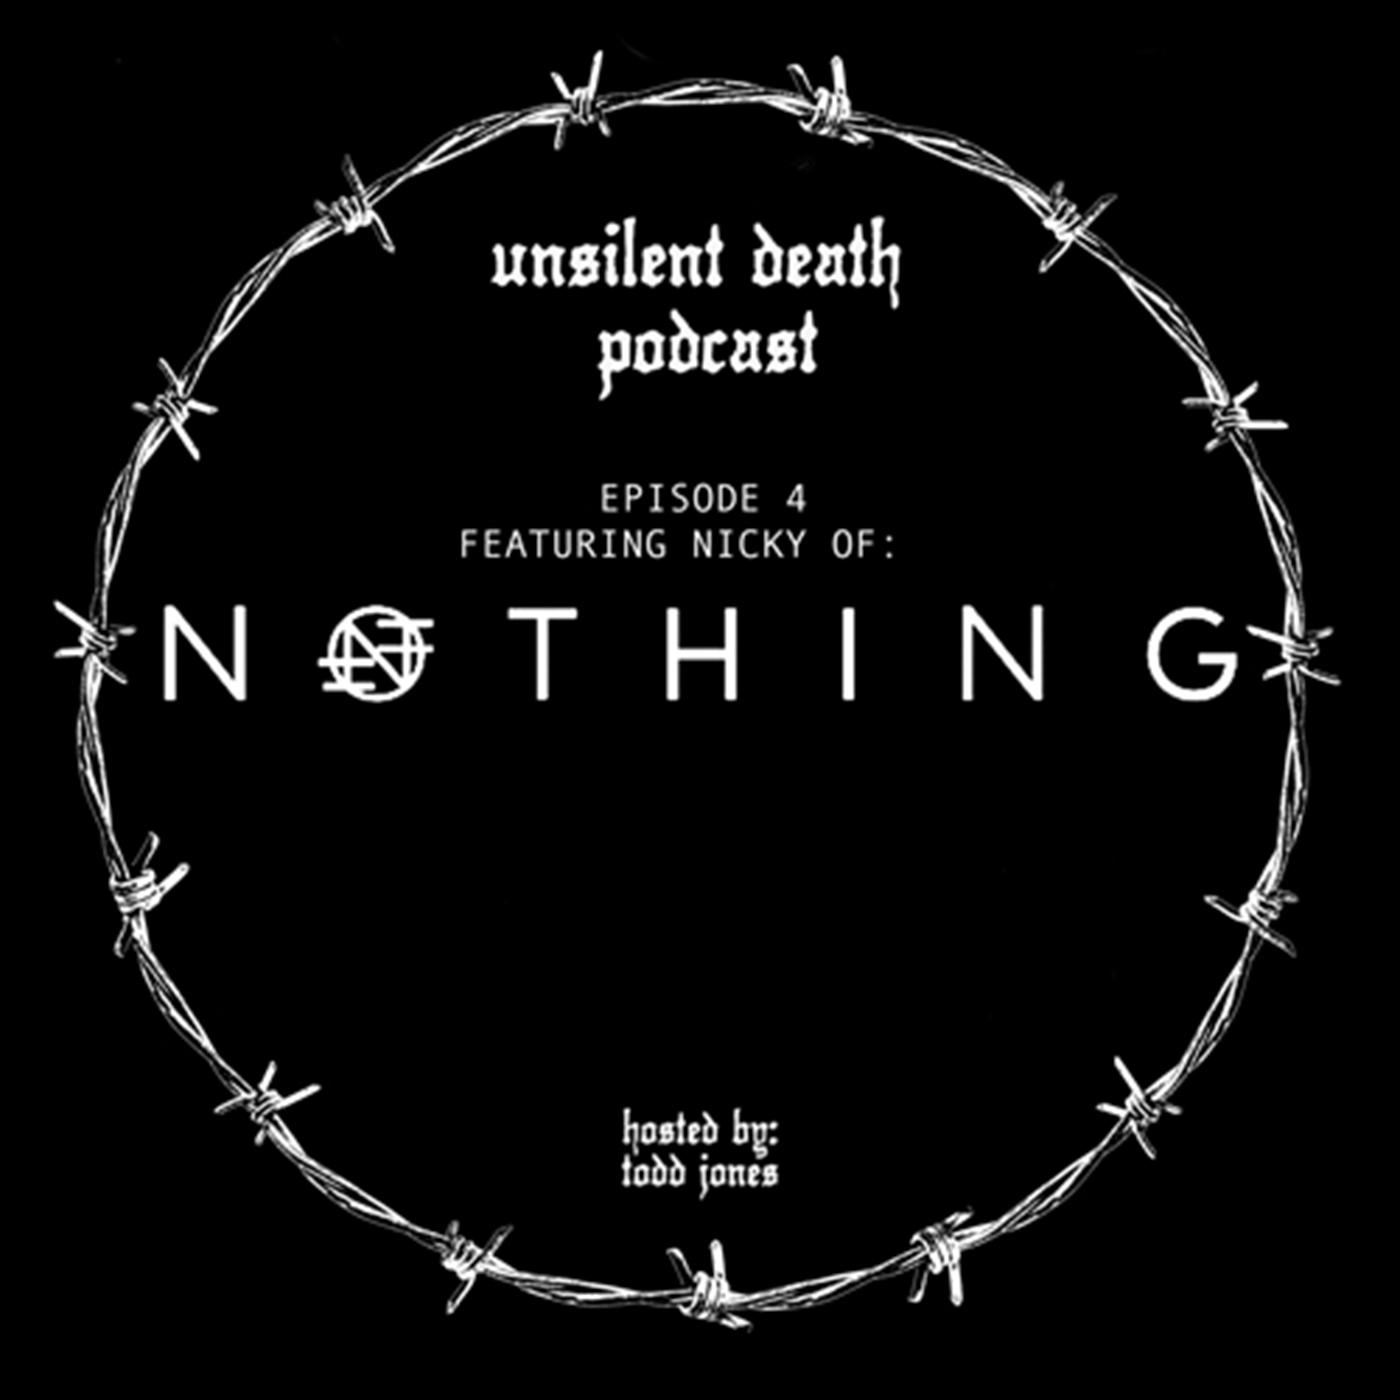 Episode 4 - Featuring Nicky of Nothing